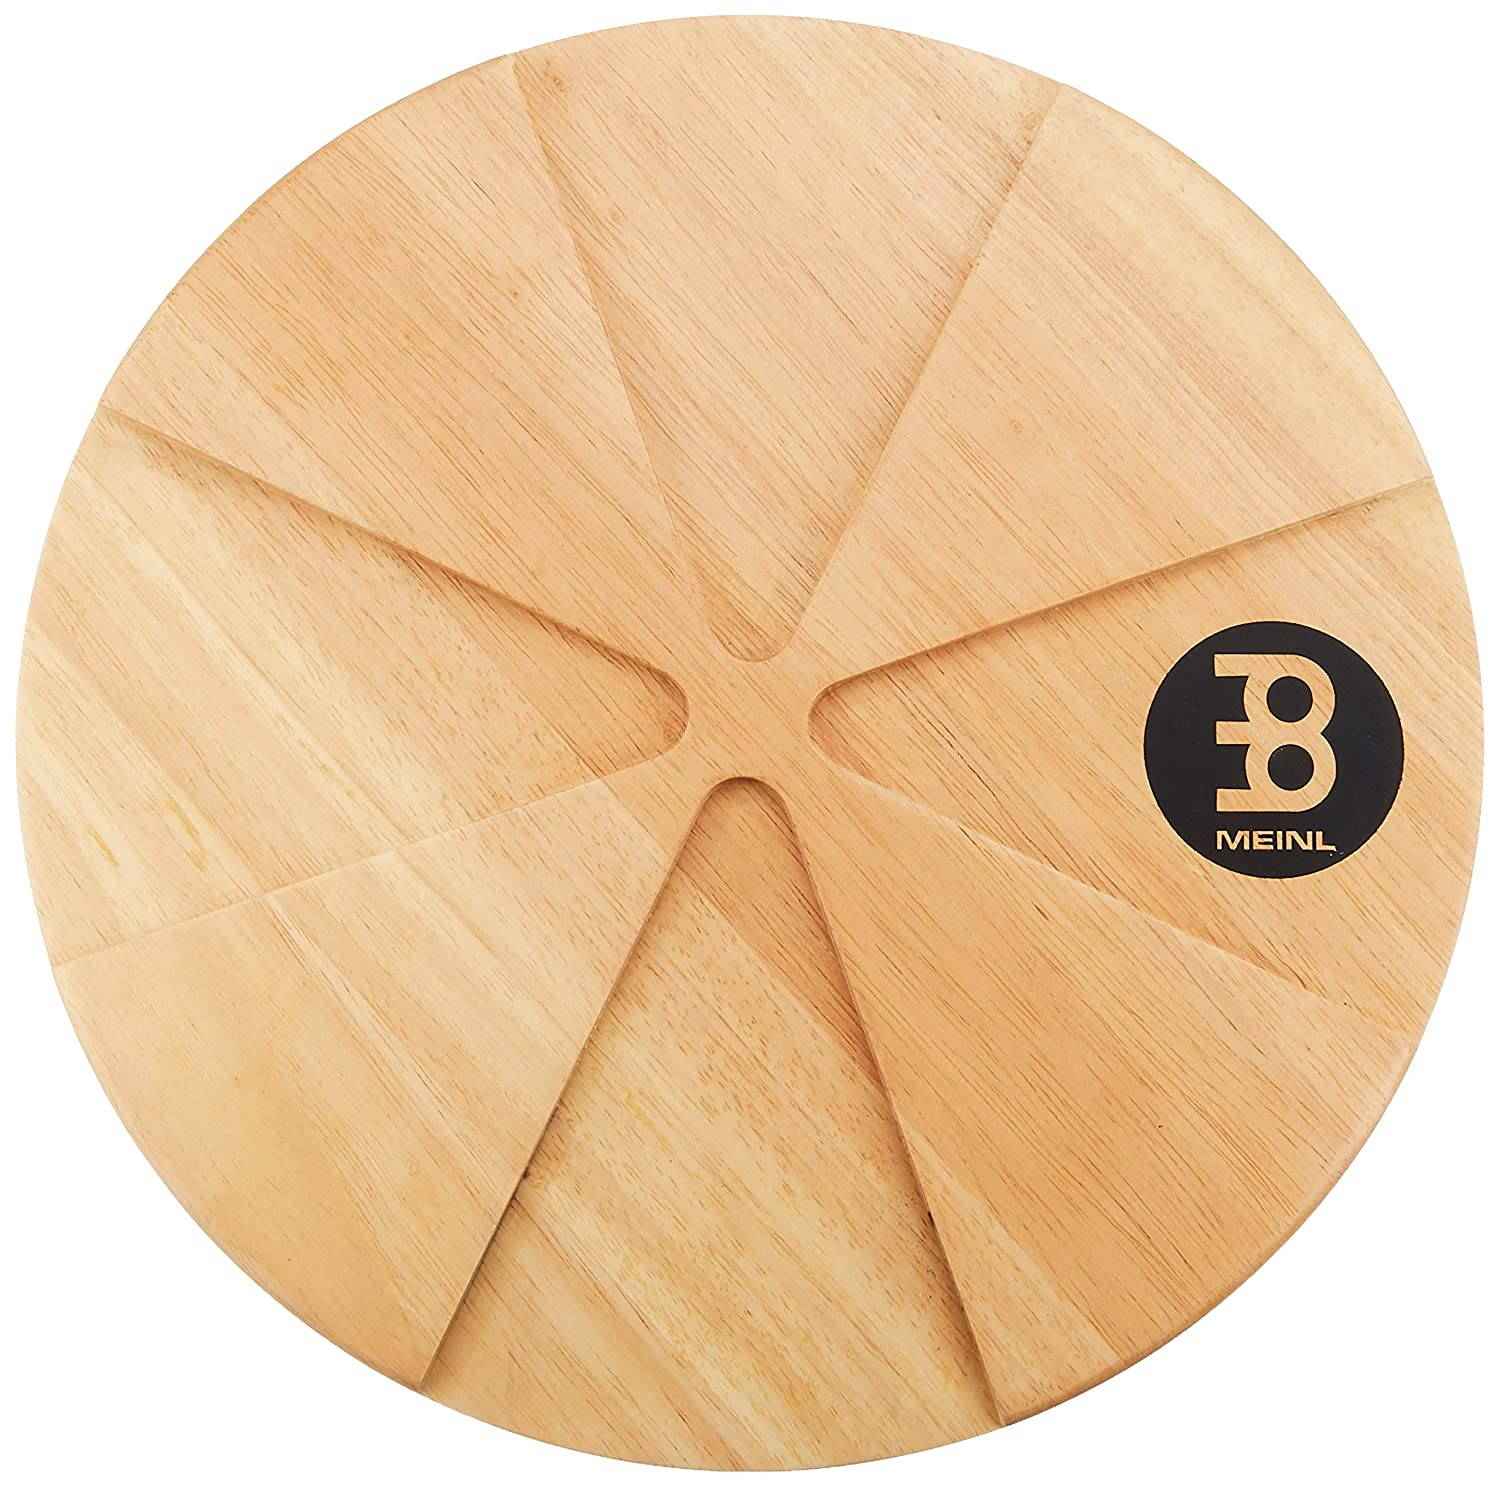 Amazon.com: Meinl Percussion CSP – Conga de madera placa de ...